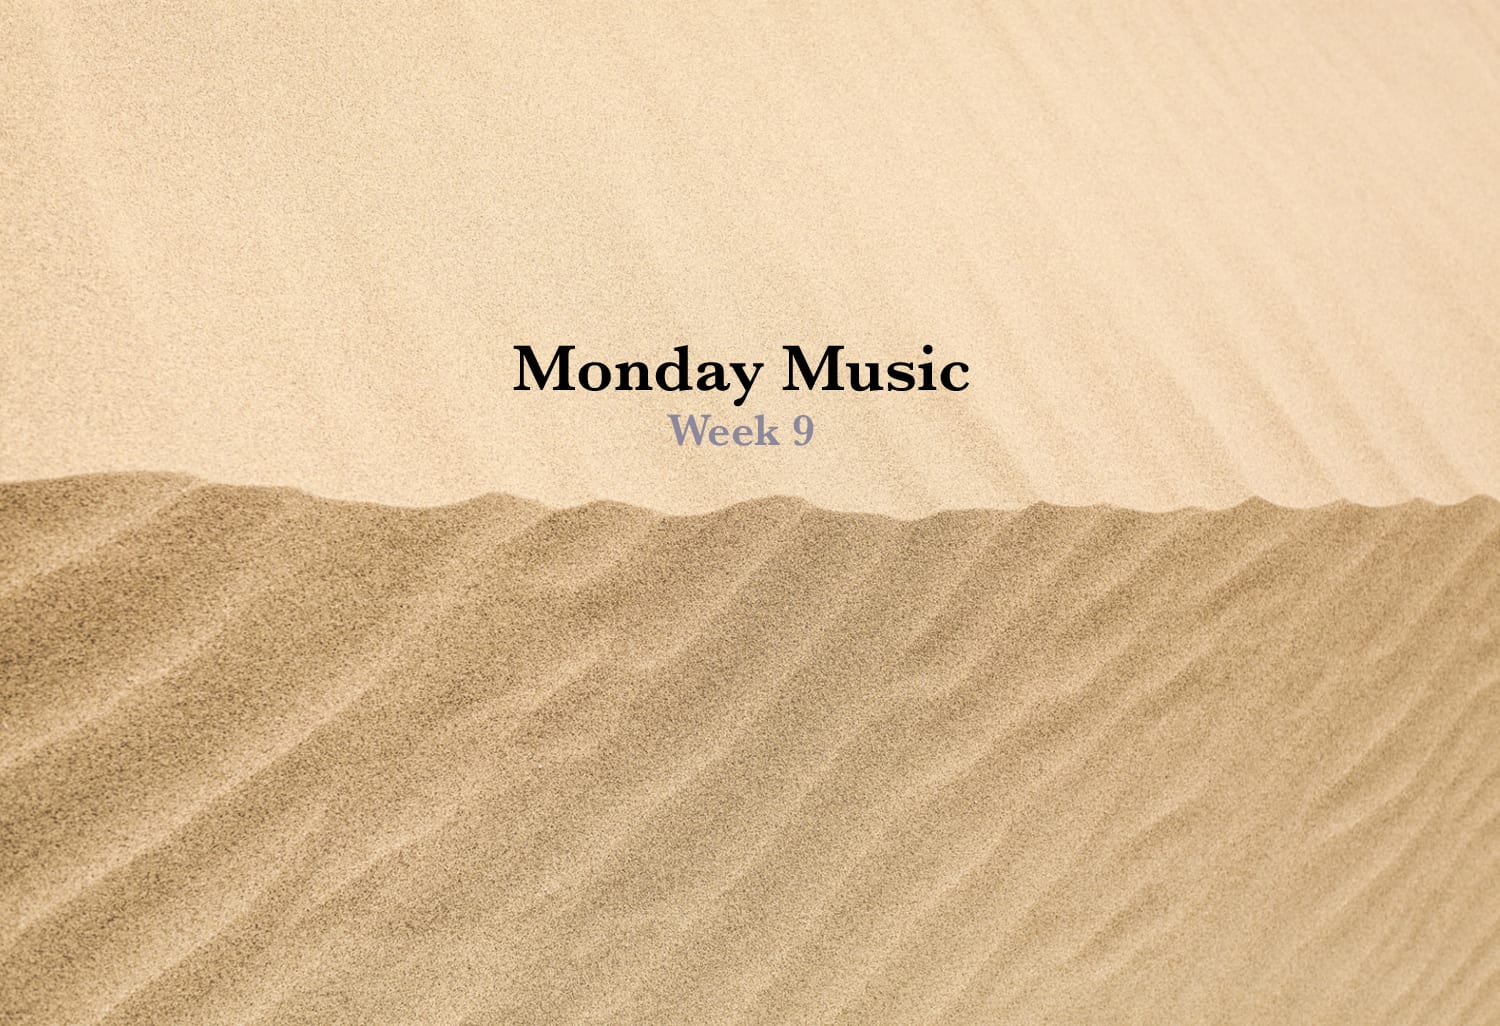 Monday Music Week 9